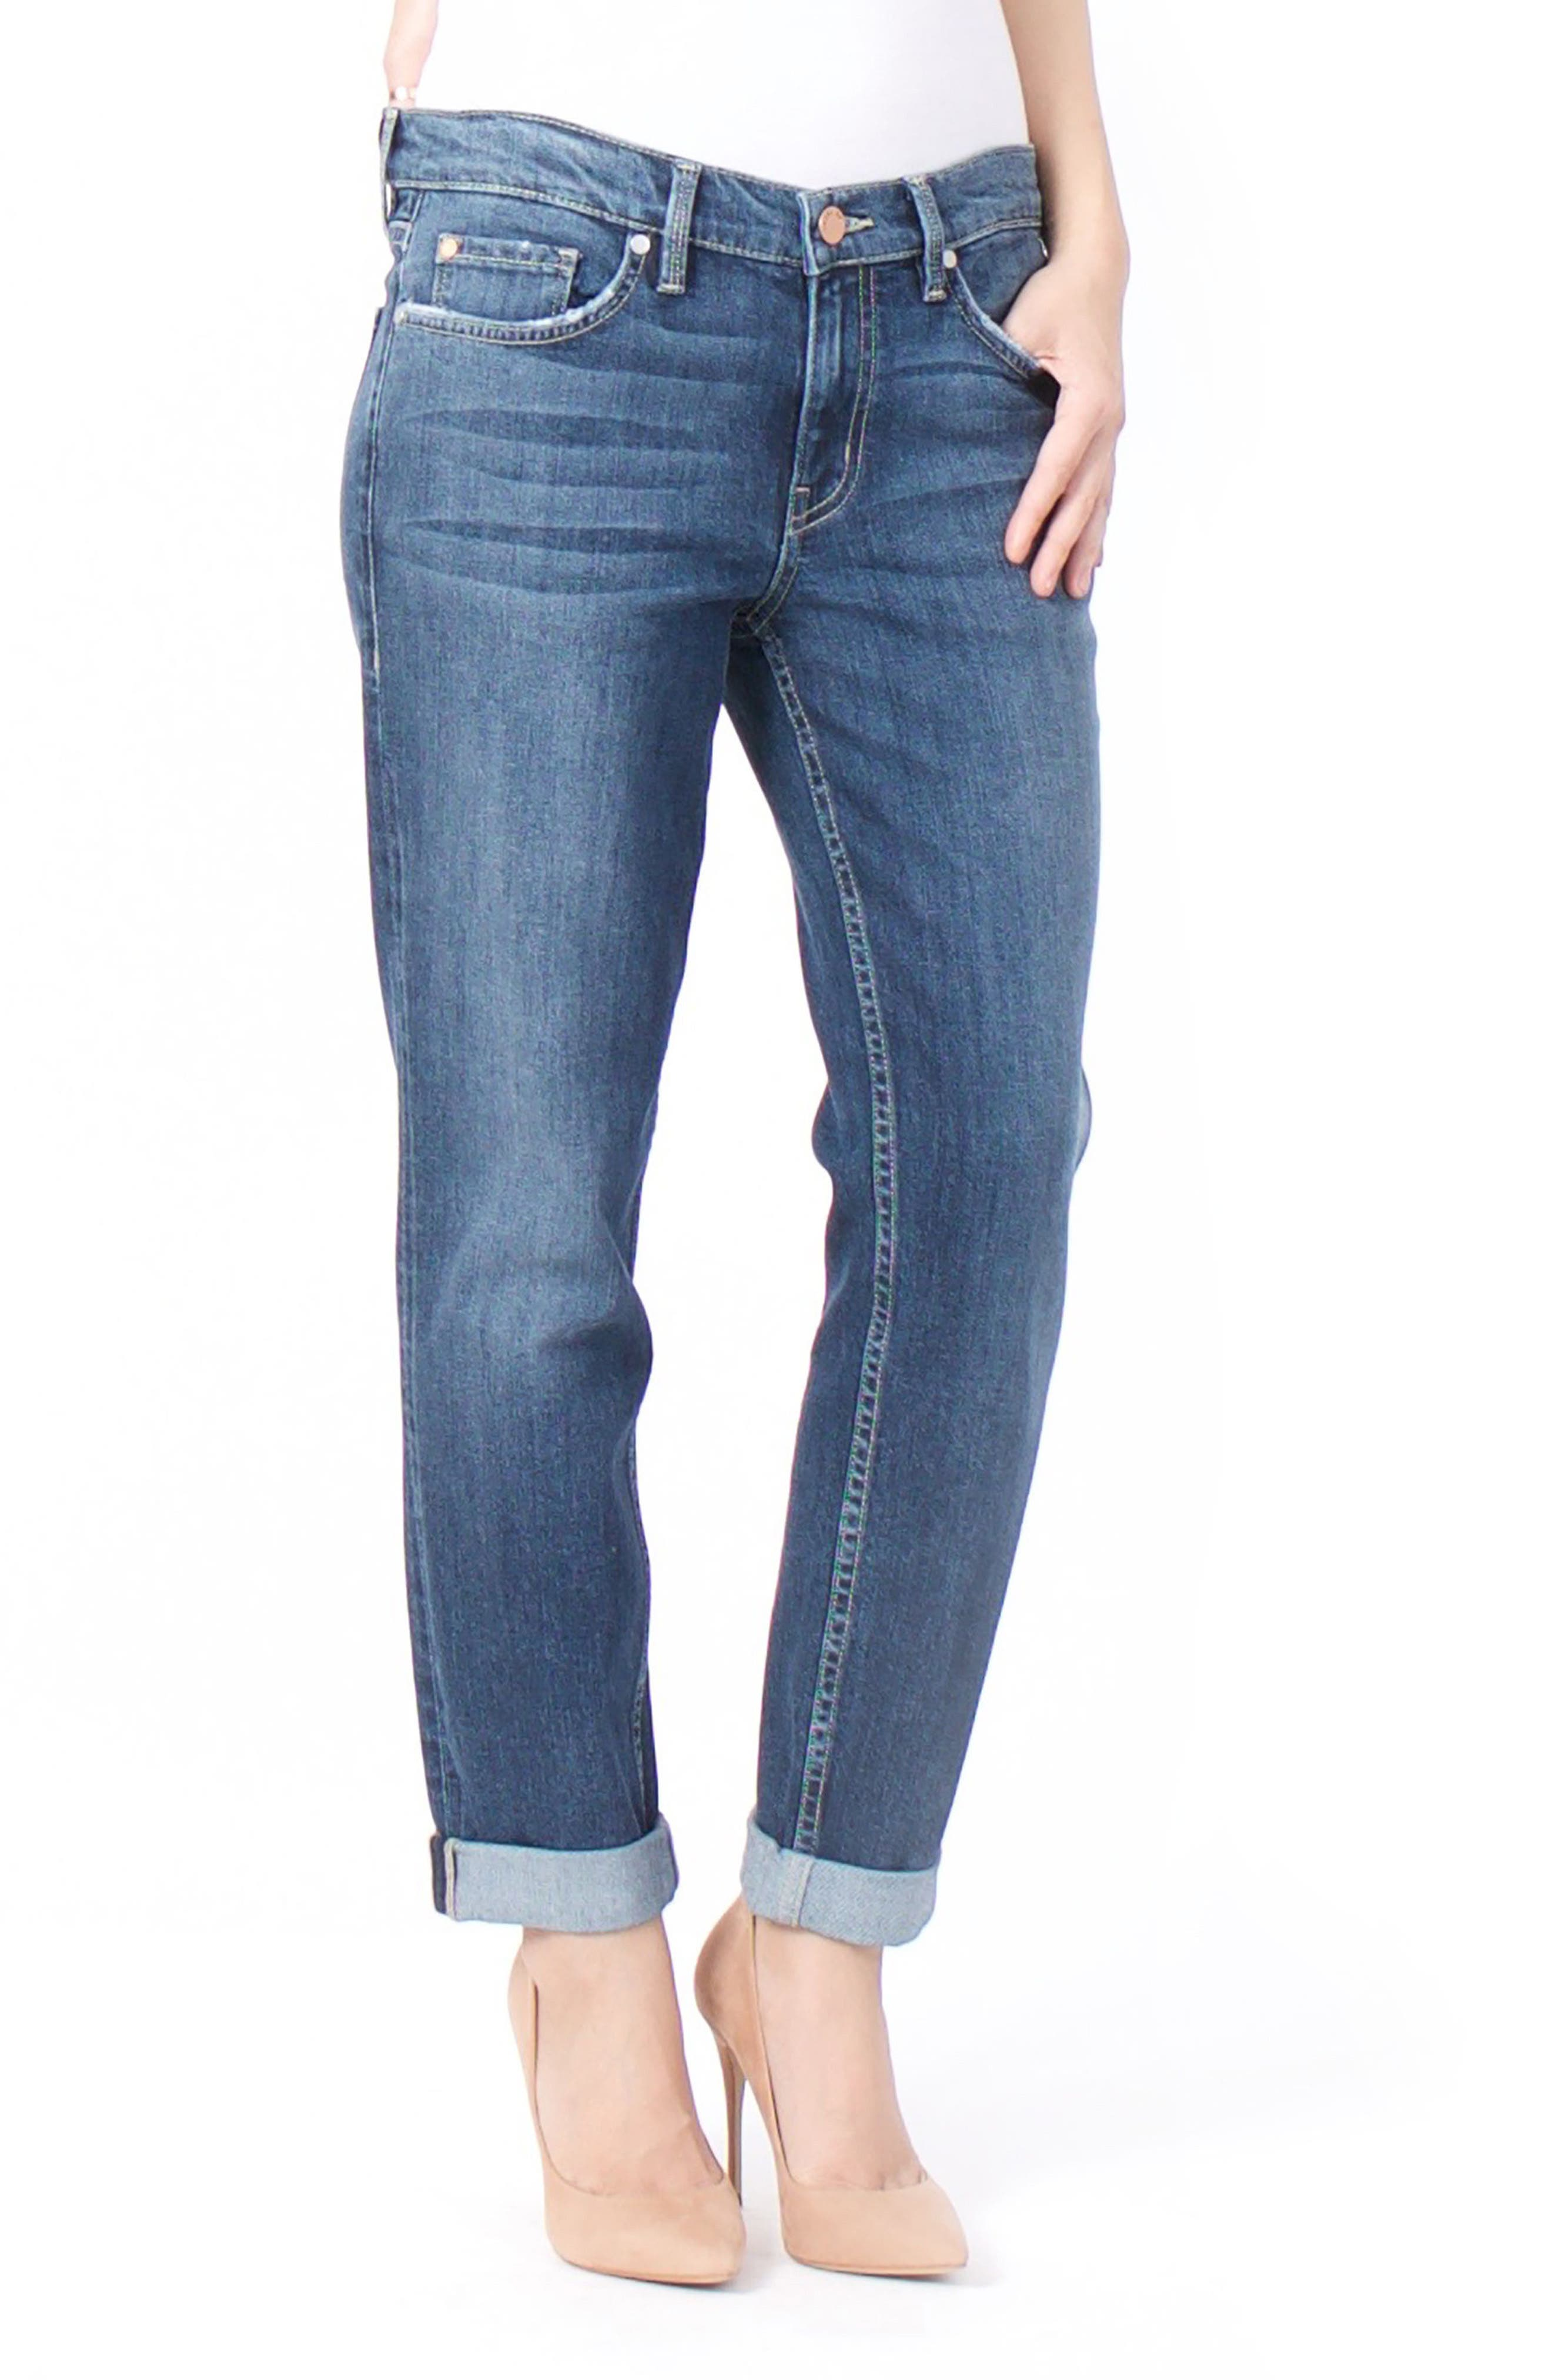 Main Image - Level 99 Sienna Stretch Ankle Jeans